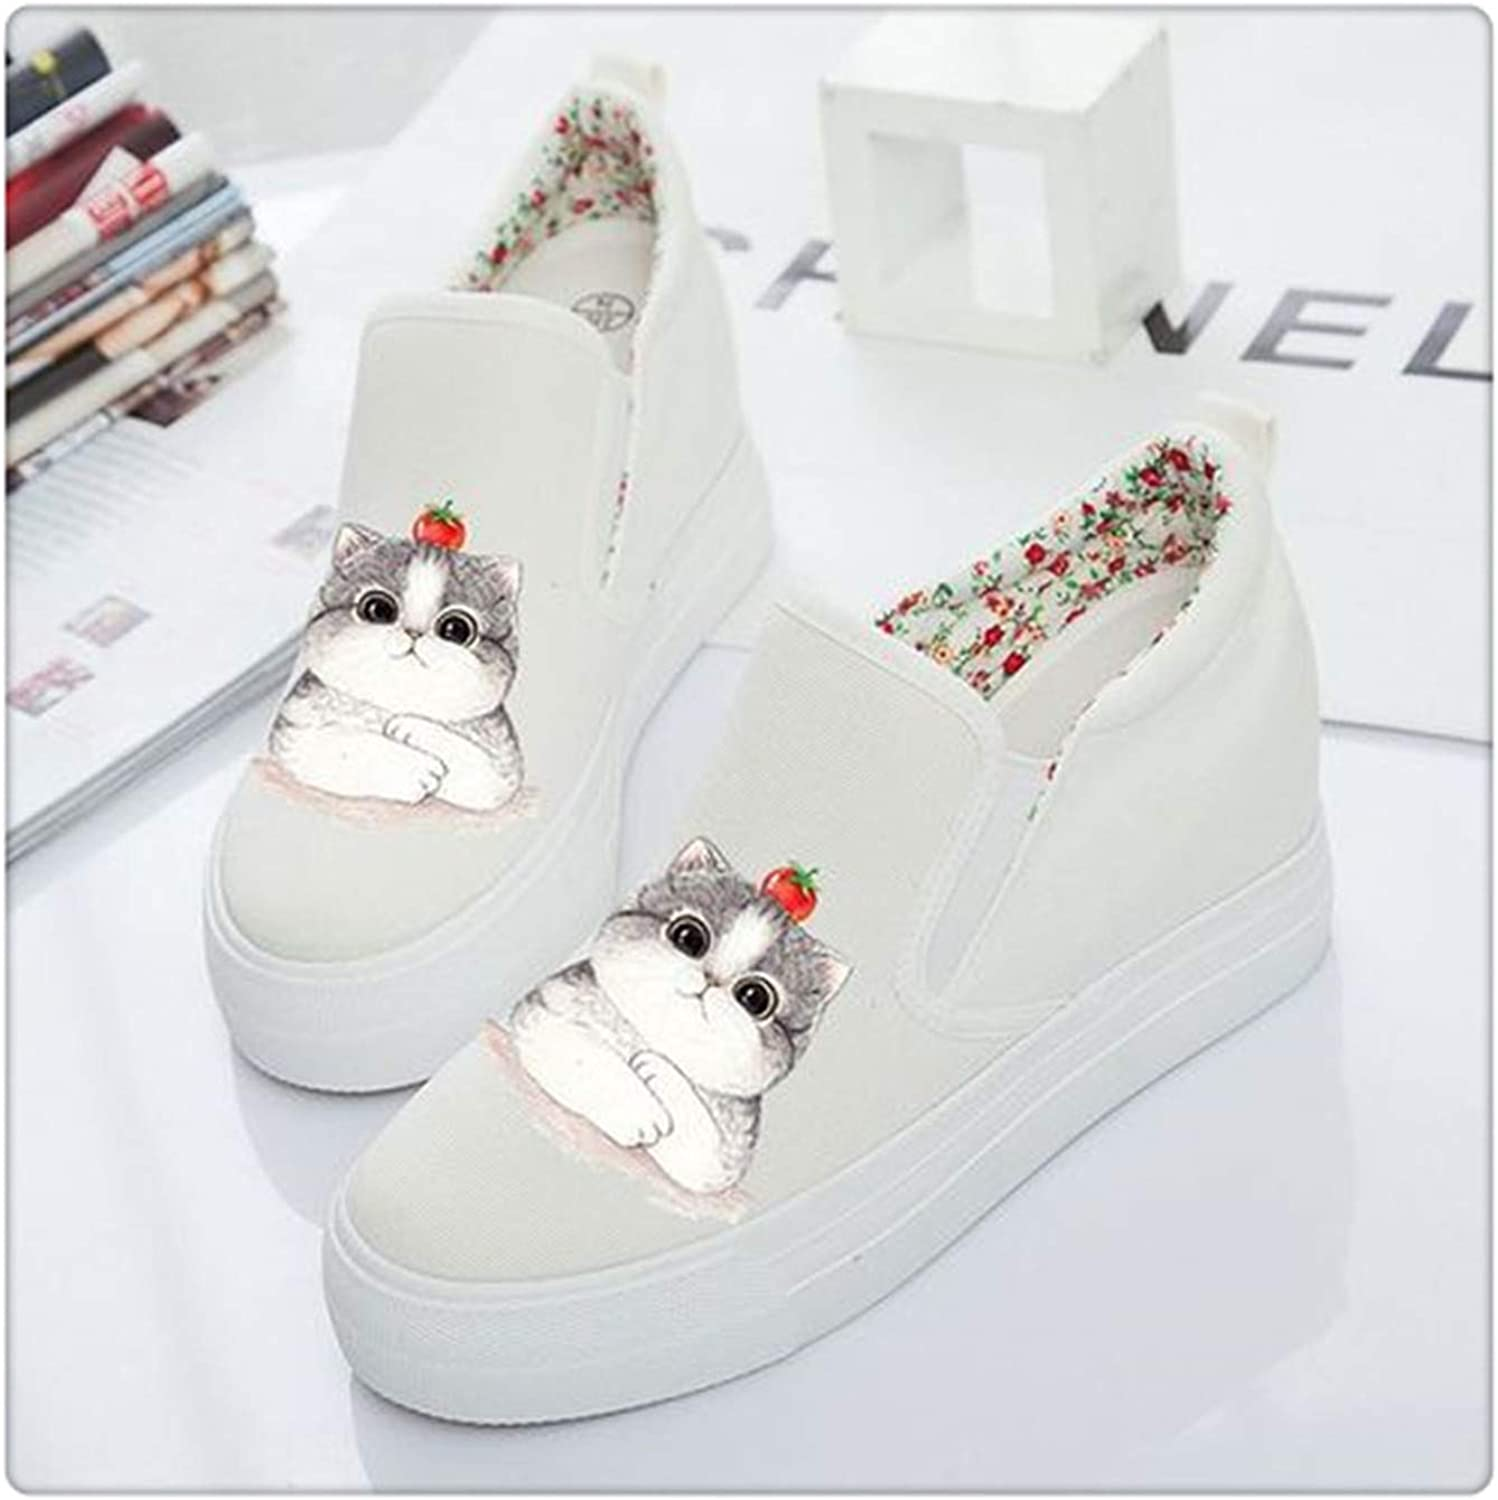 Sweet Women's shoes Platform 2019 Autumn Slip on Canvas shoes Women Loafers Casual Espadrilles White Black Creepers White xihongshi Mao 4.5